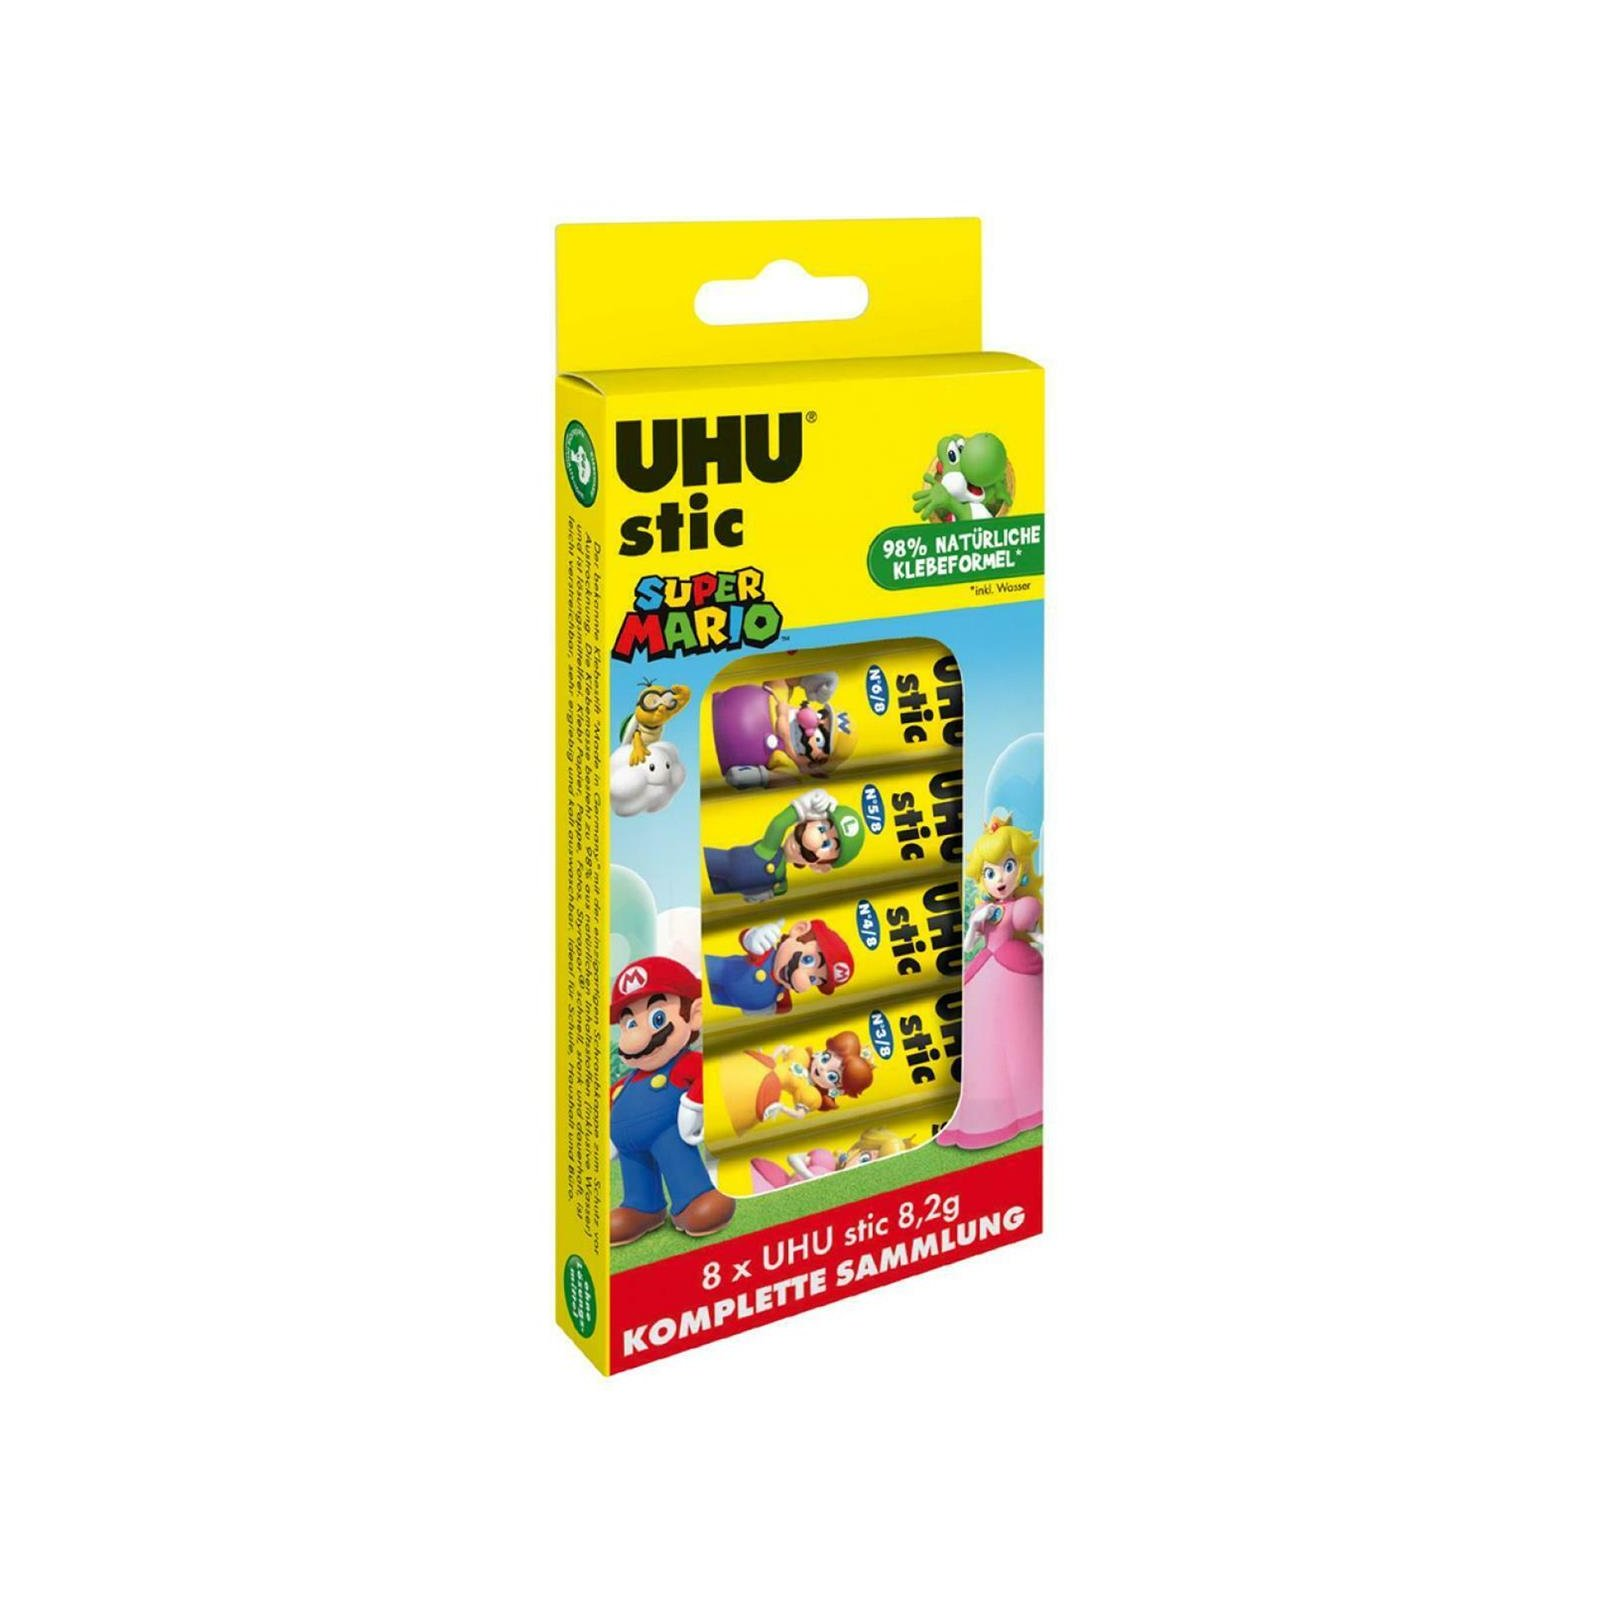 UHU Klebestift stic Collection Box, 8 x 8,2 g SUPER MARIO